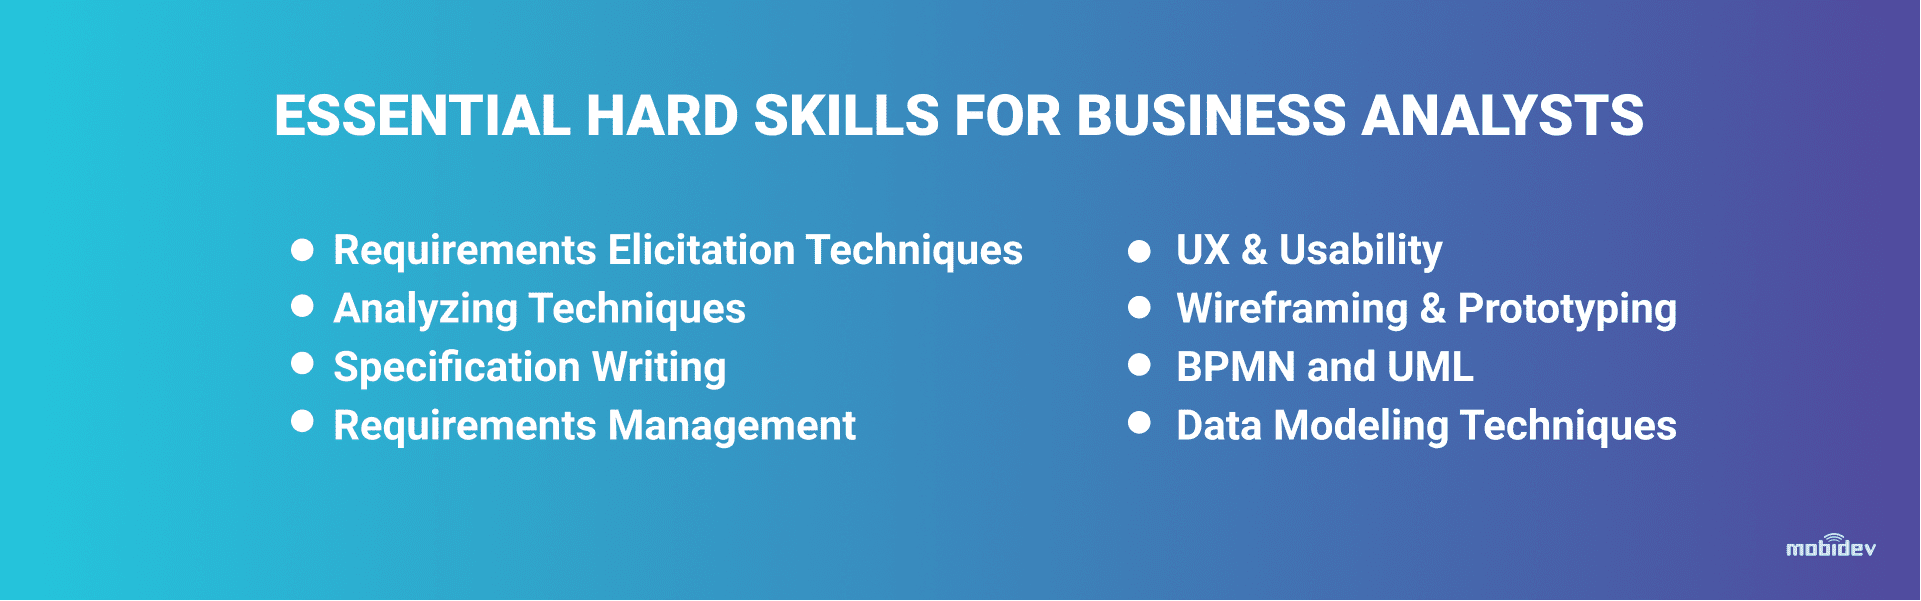 Hard Skills for a Successful Business Analyst